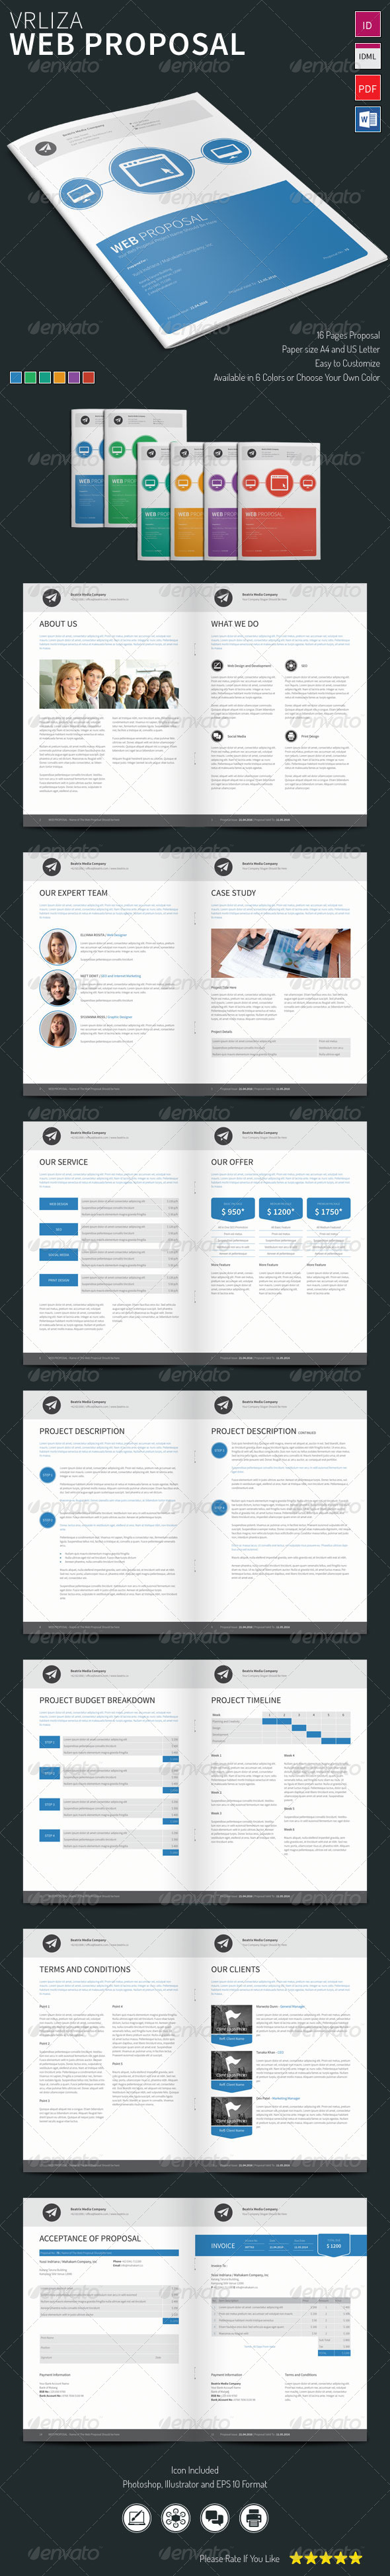 Vrliza - Web Proposal Template - Proposals & Invoices Stationery